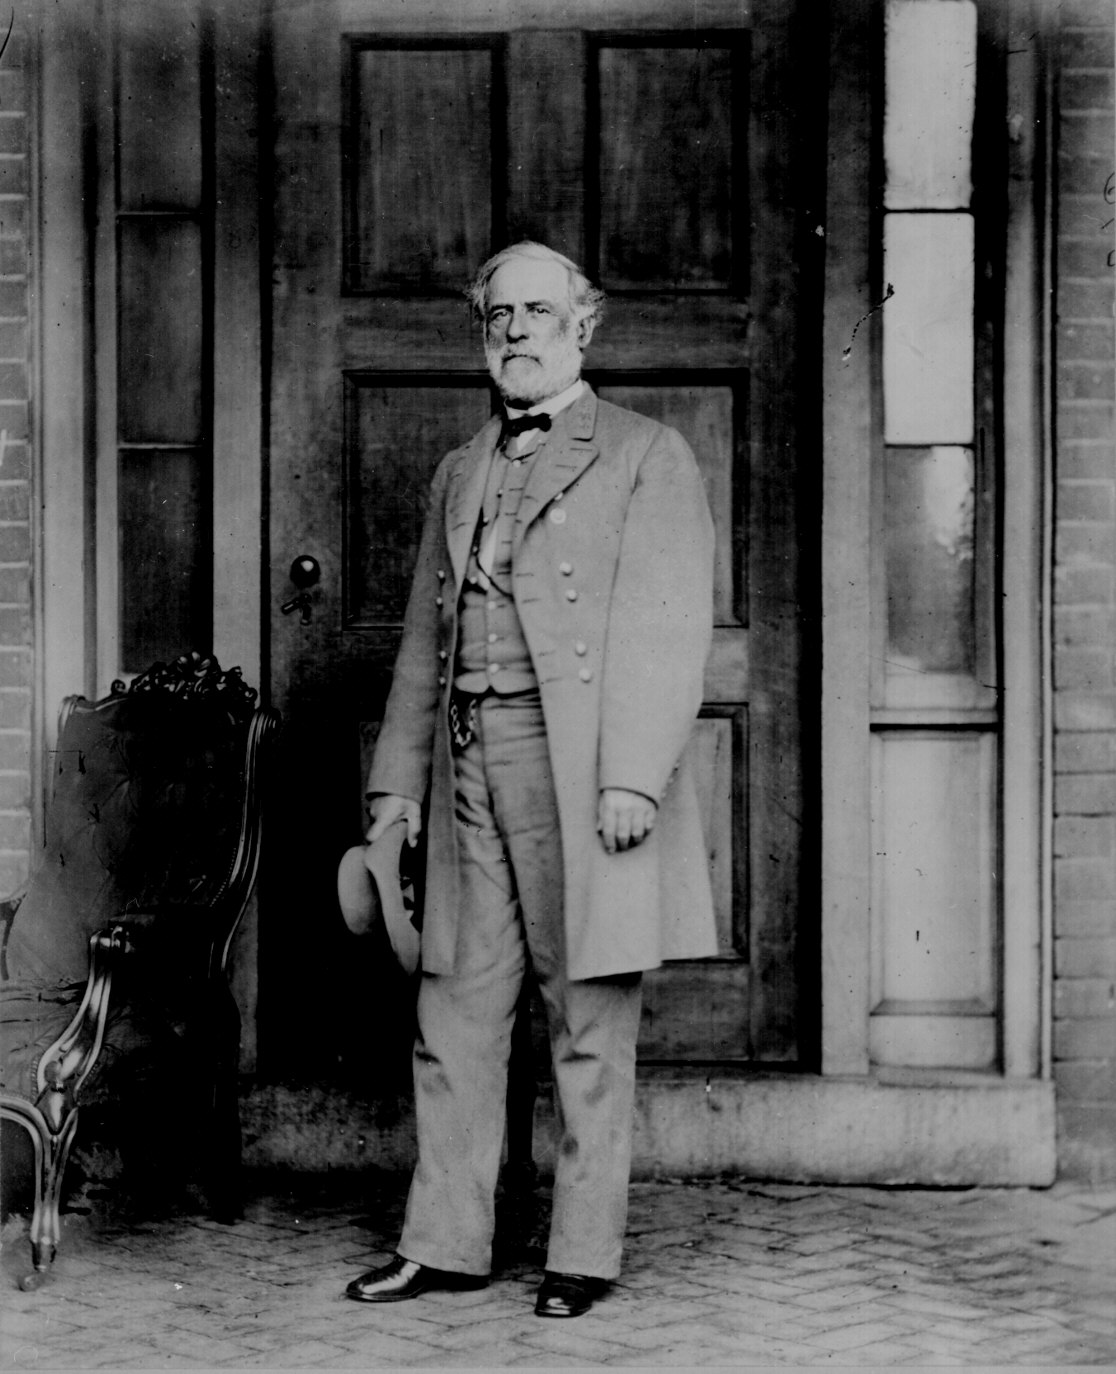 Matthew Brady photograph of Robert E. Lee, 1865